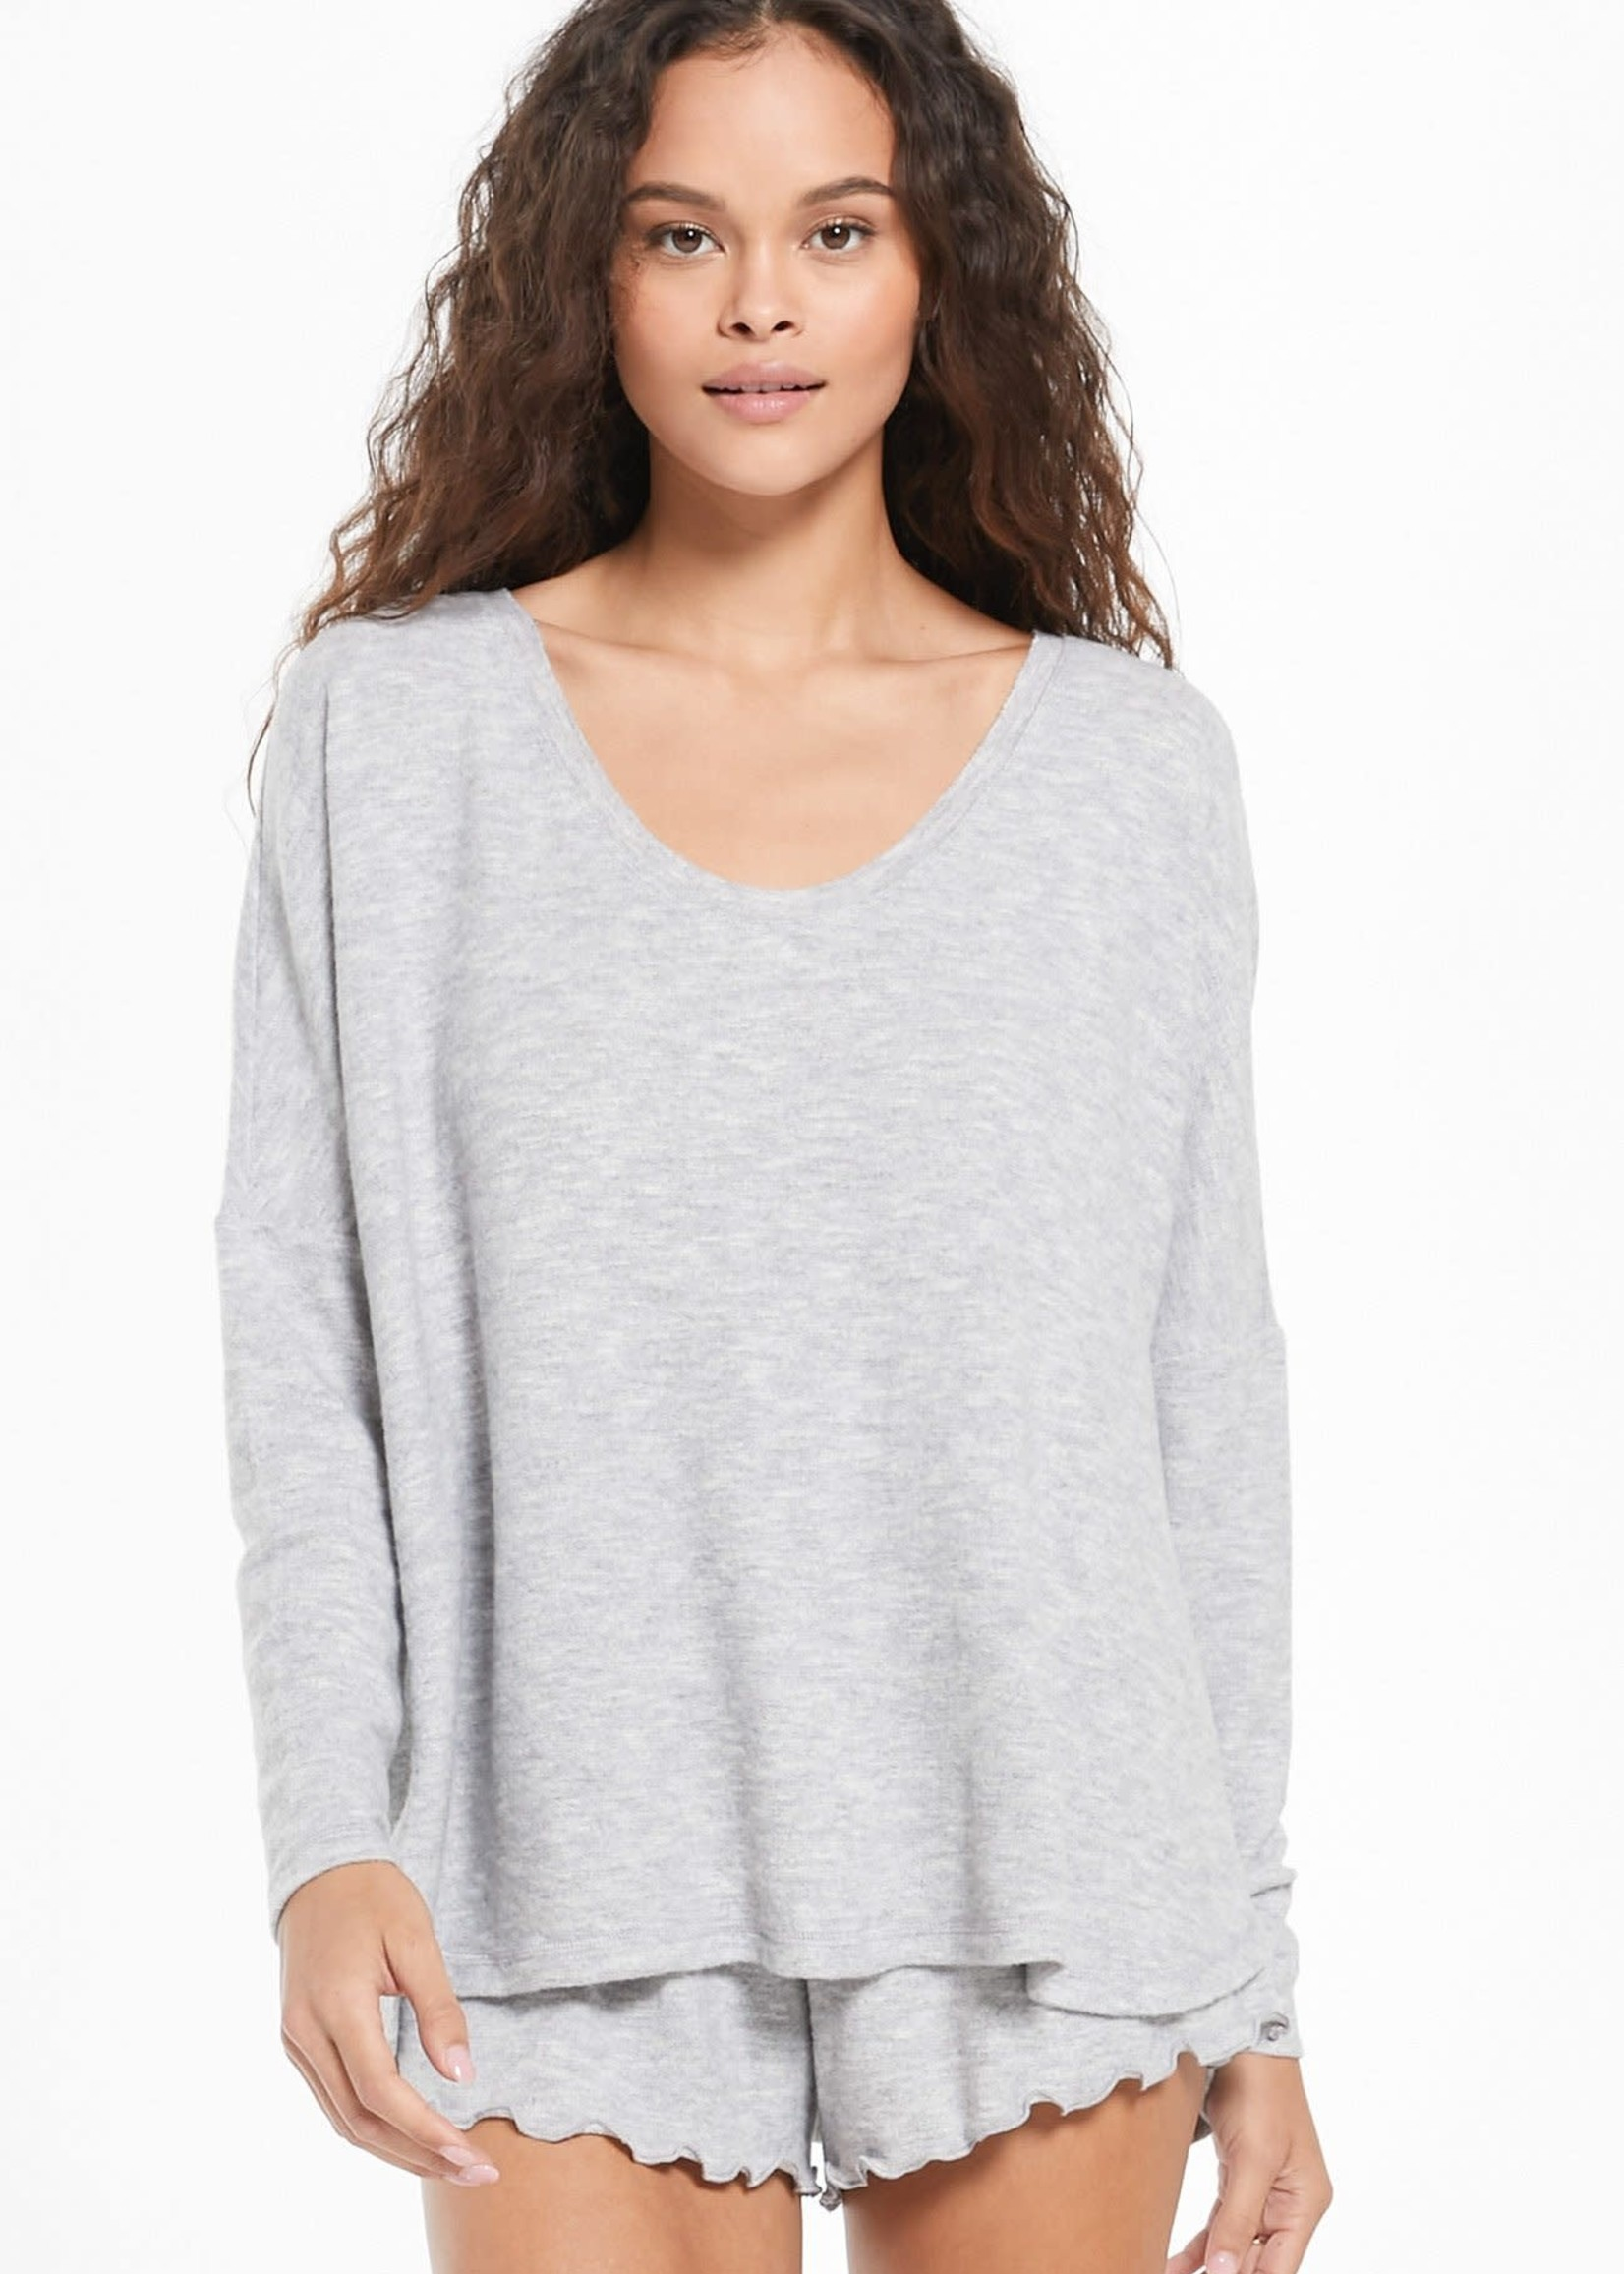 Z Supply Hang Out Long Sleeve Top